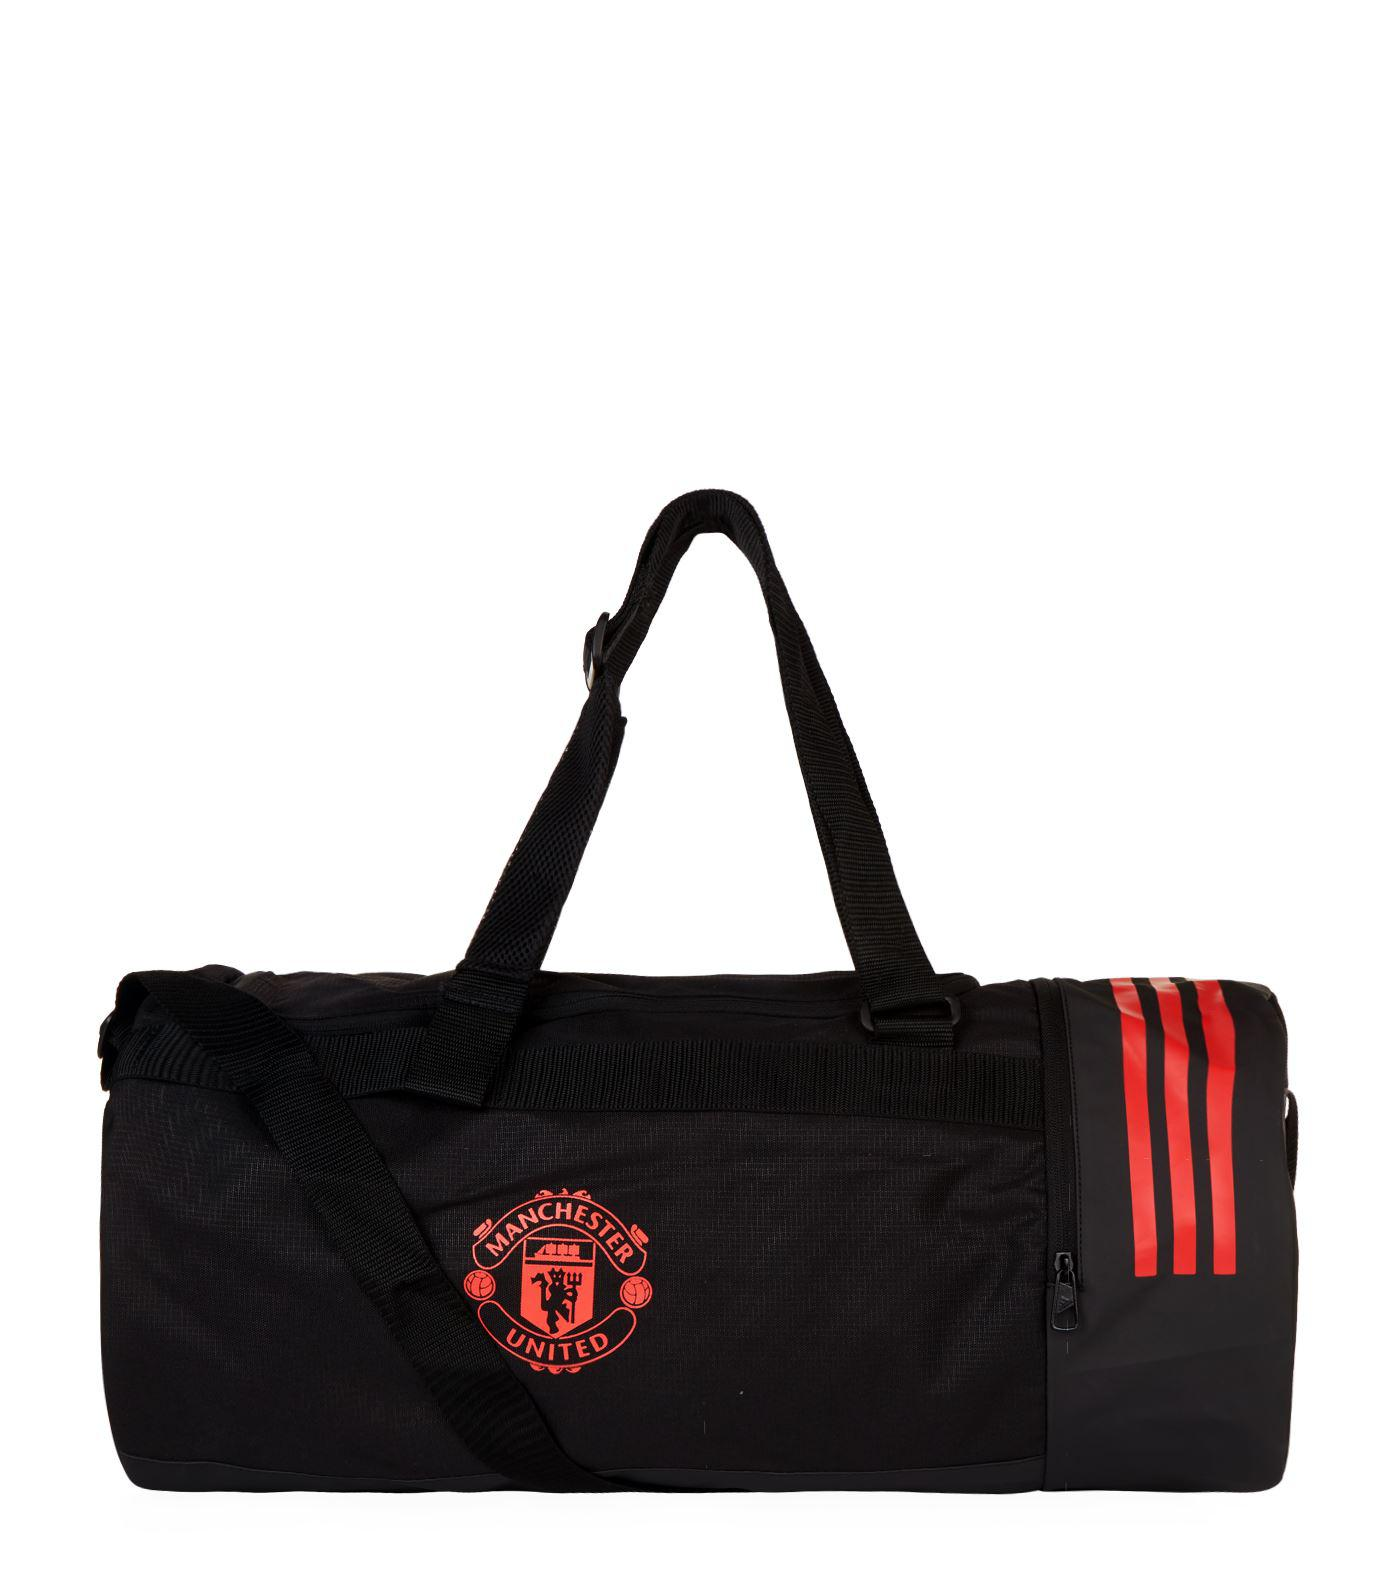 Adidas Men S Black Sports Duffle Bag